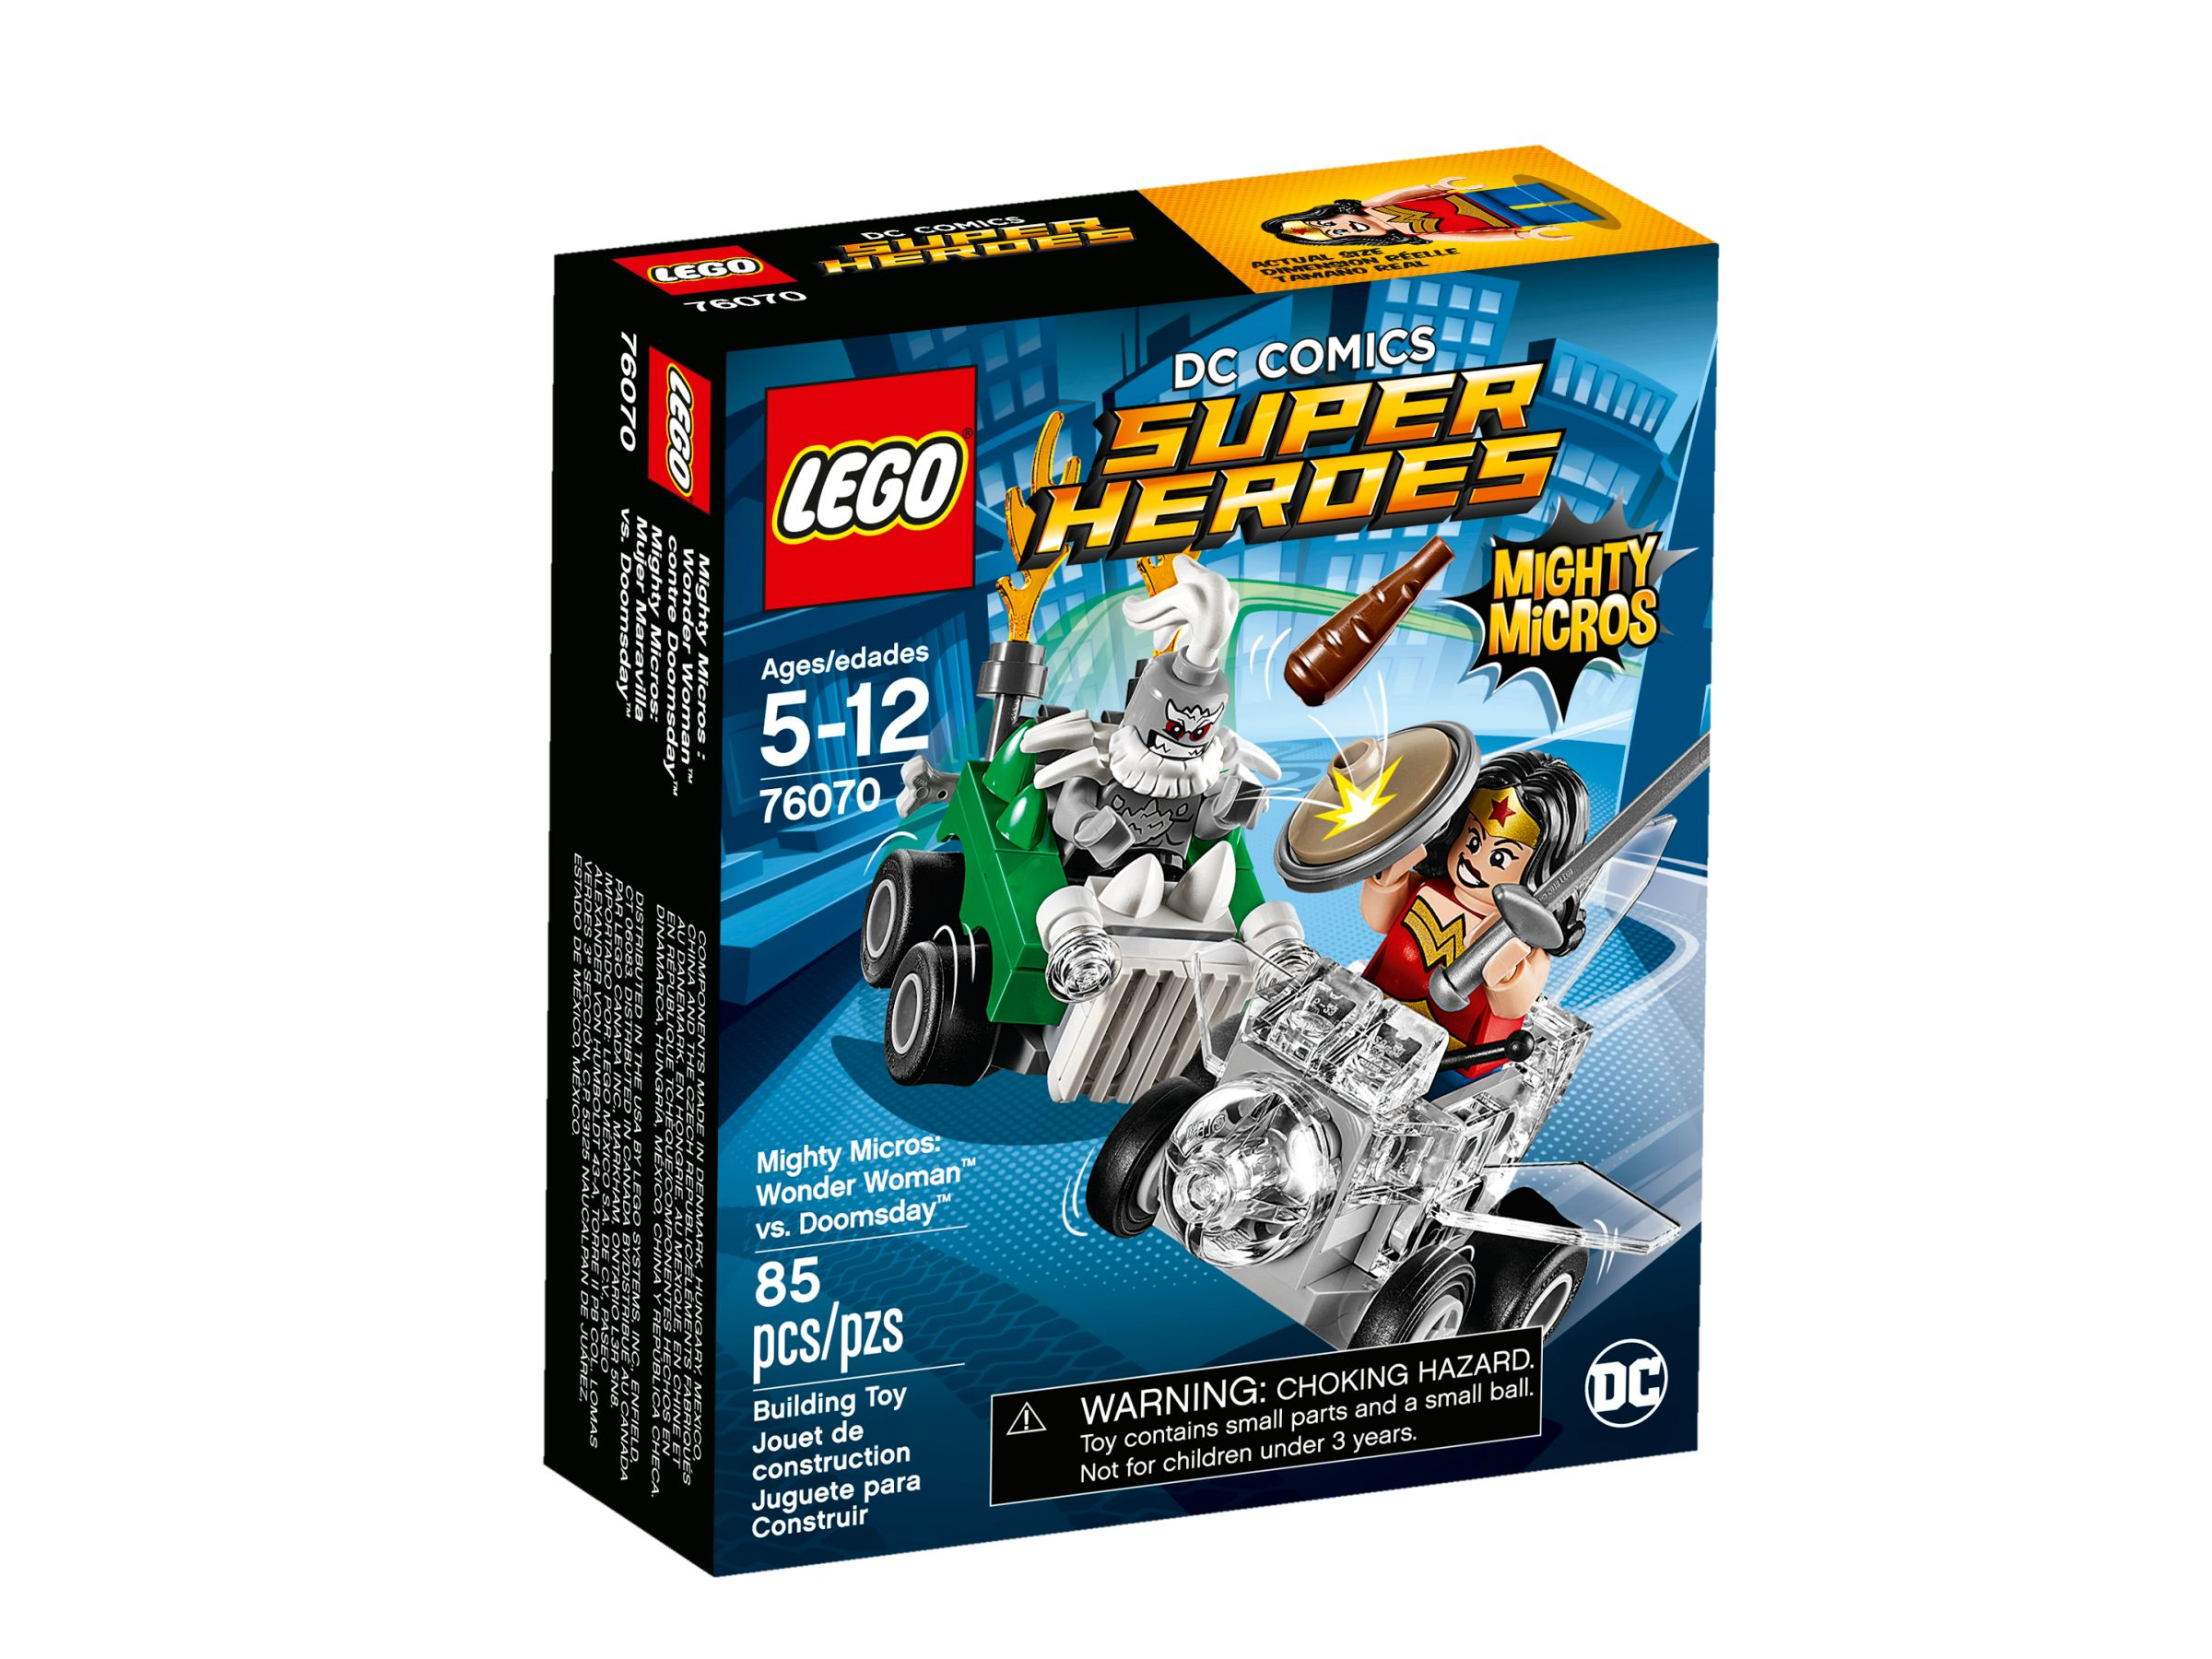 LEGO Super Heroes 76070 Mighty Micros: Wonder Woman™ vs. Doomsday™ LEGO_76070_alt1.jpg